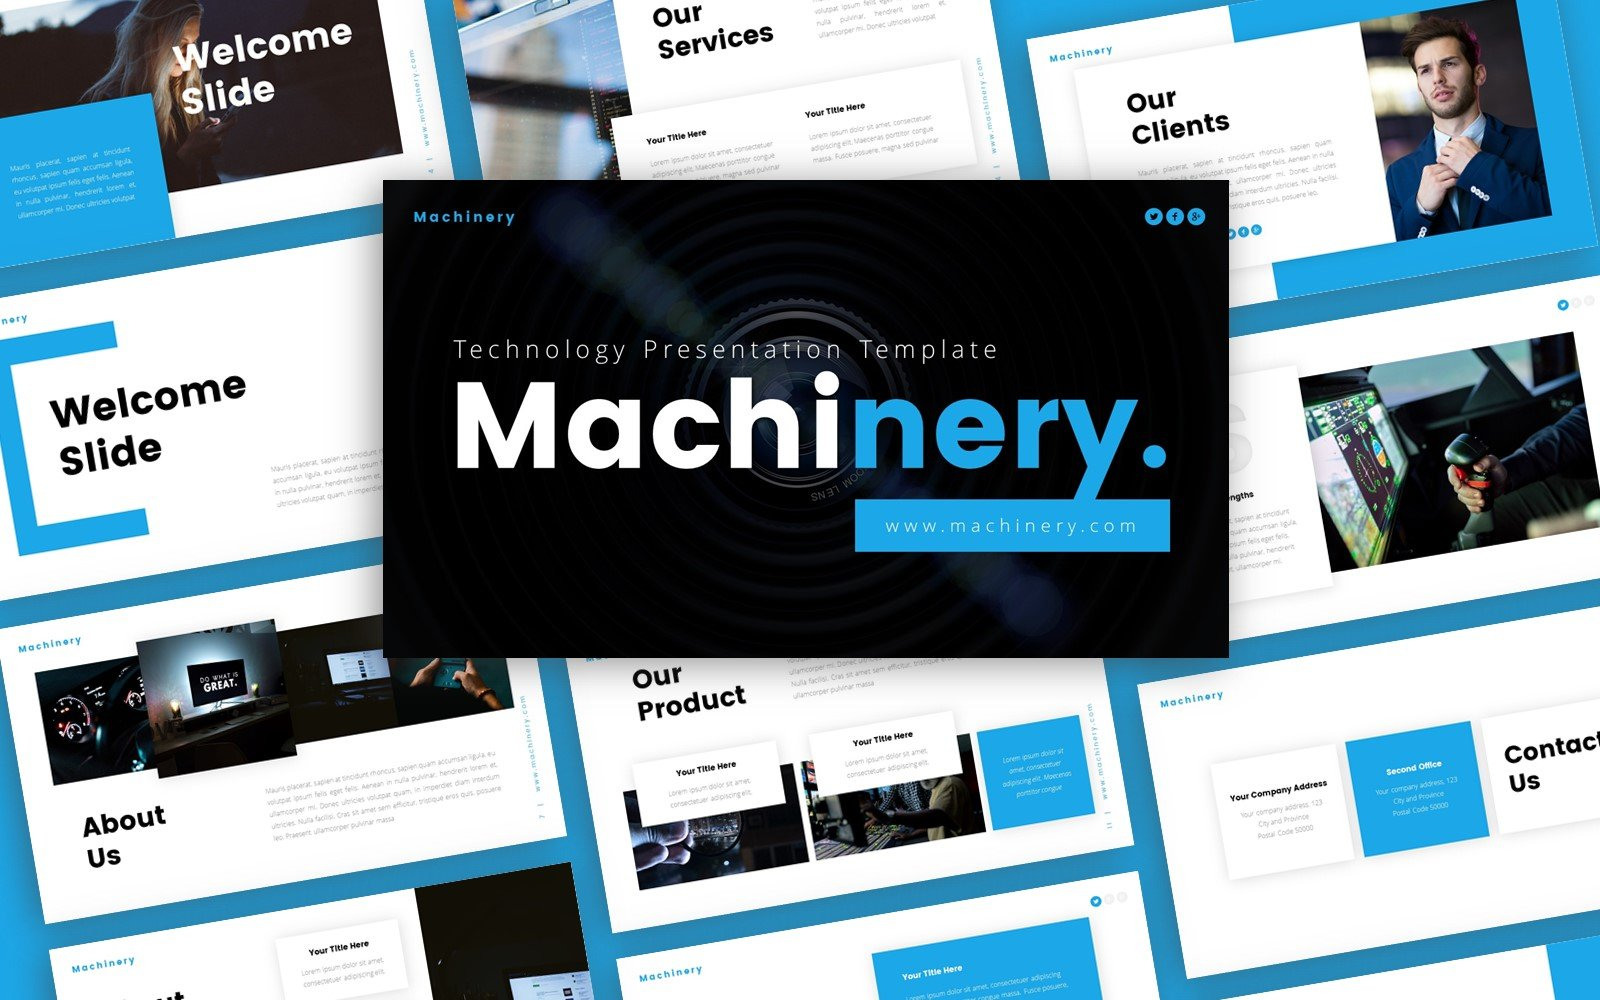 Szablon PowerPoint Machinery Technology Presentation #123887